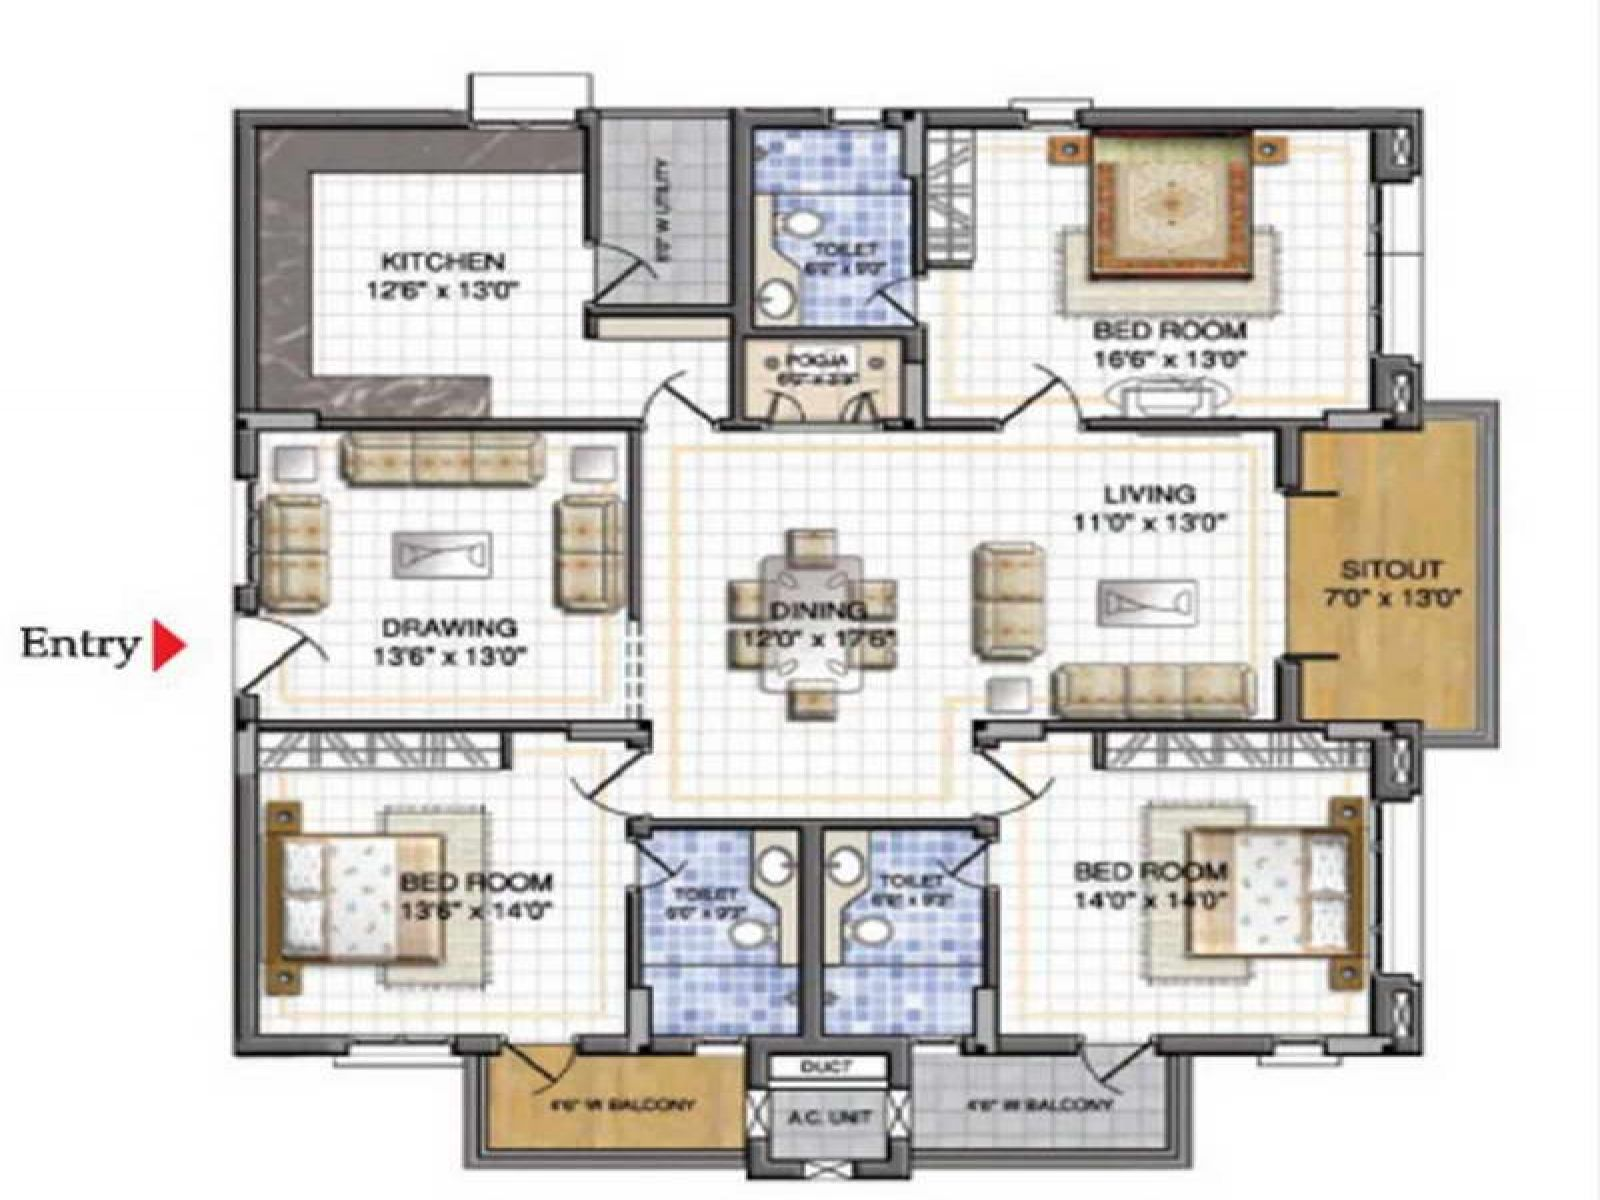 Sweet home 3d plans google search house designs pinterest layout online house plans Free house plans